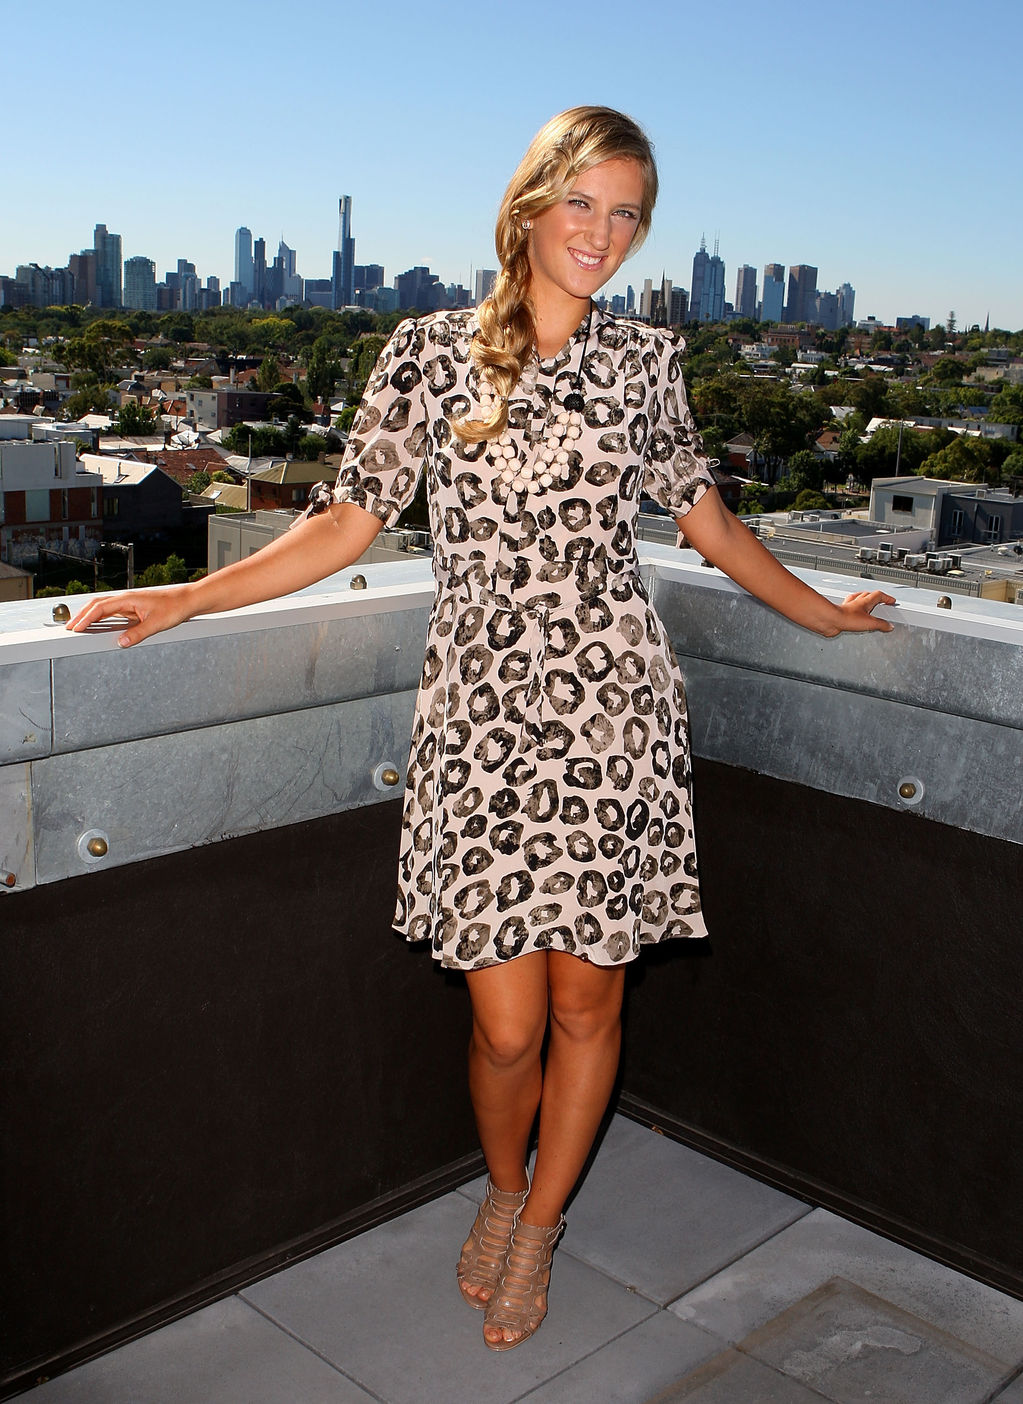 Victoria azarenkas fashion and off court pictures cute victoria azarenka of belarus strikes a stylish modeling pose voltagebd Image collections